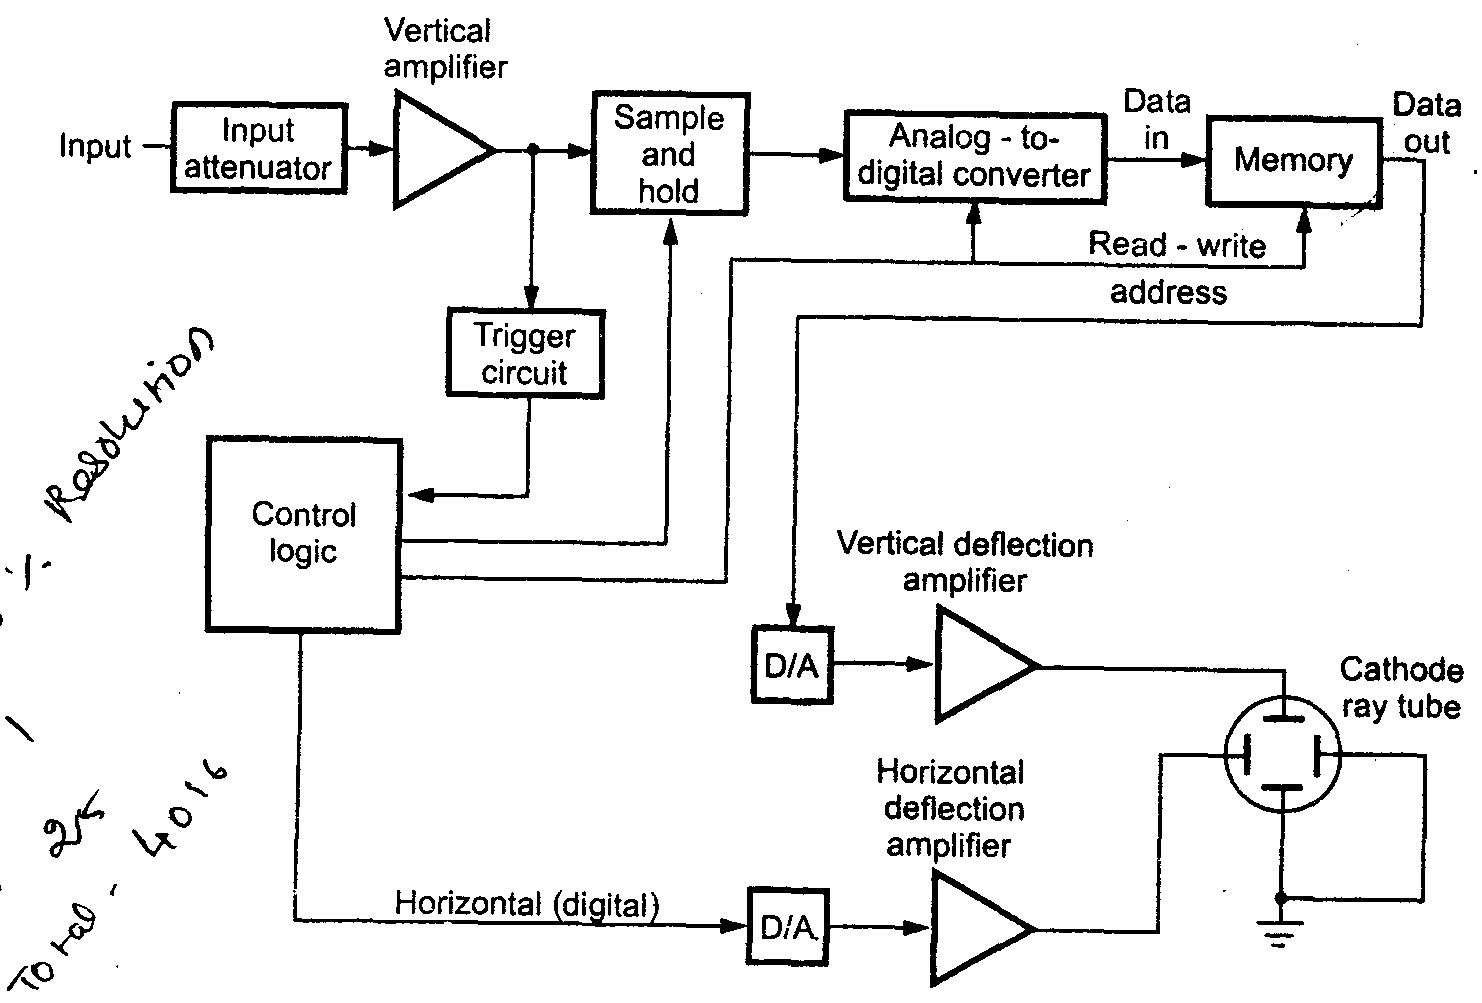 Block A Diagram Of Oscilloscope Vi Trusted Wiring Crt Monitor Schematic Media To Get All Datas In Electrical Science Digital